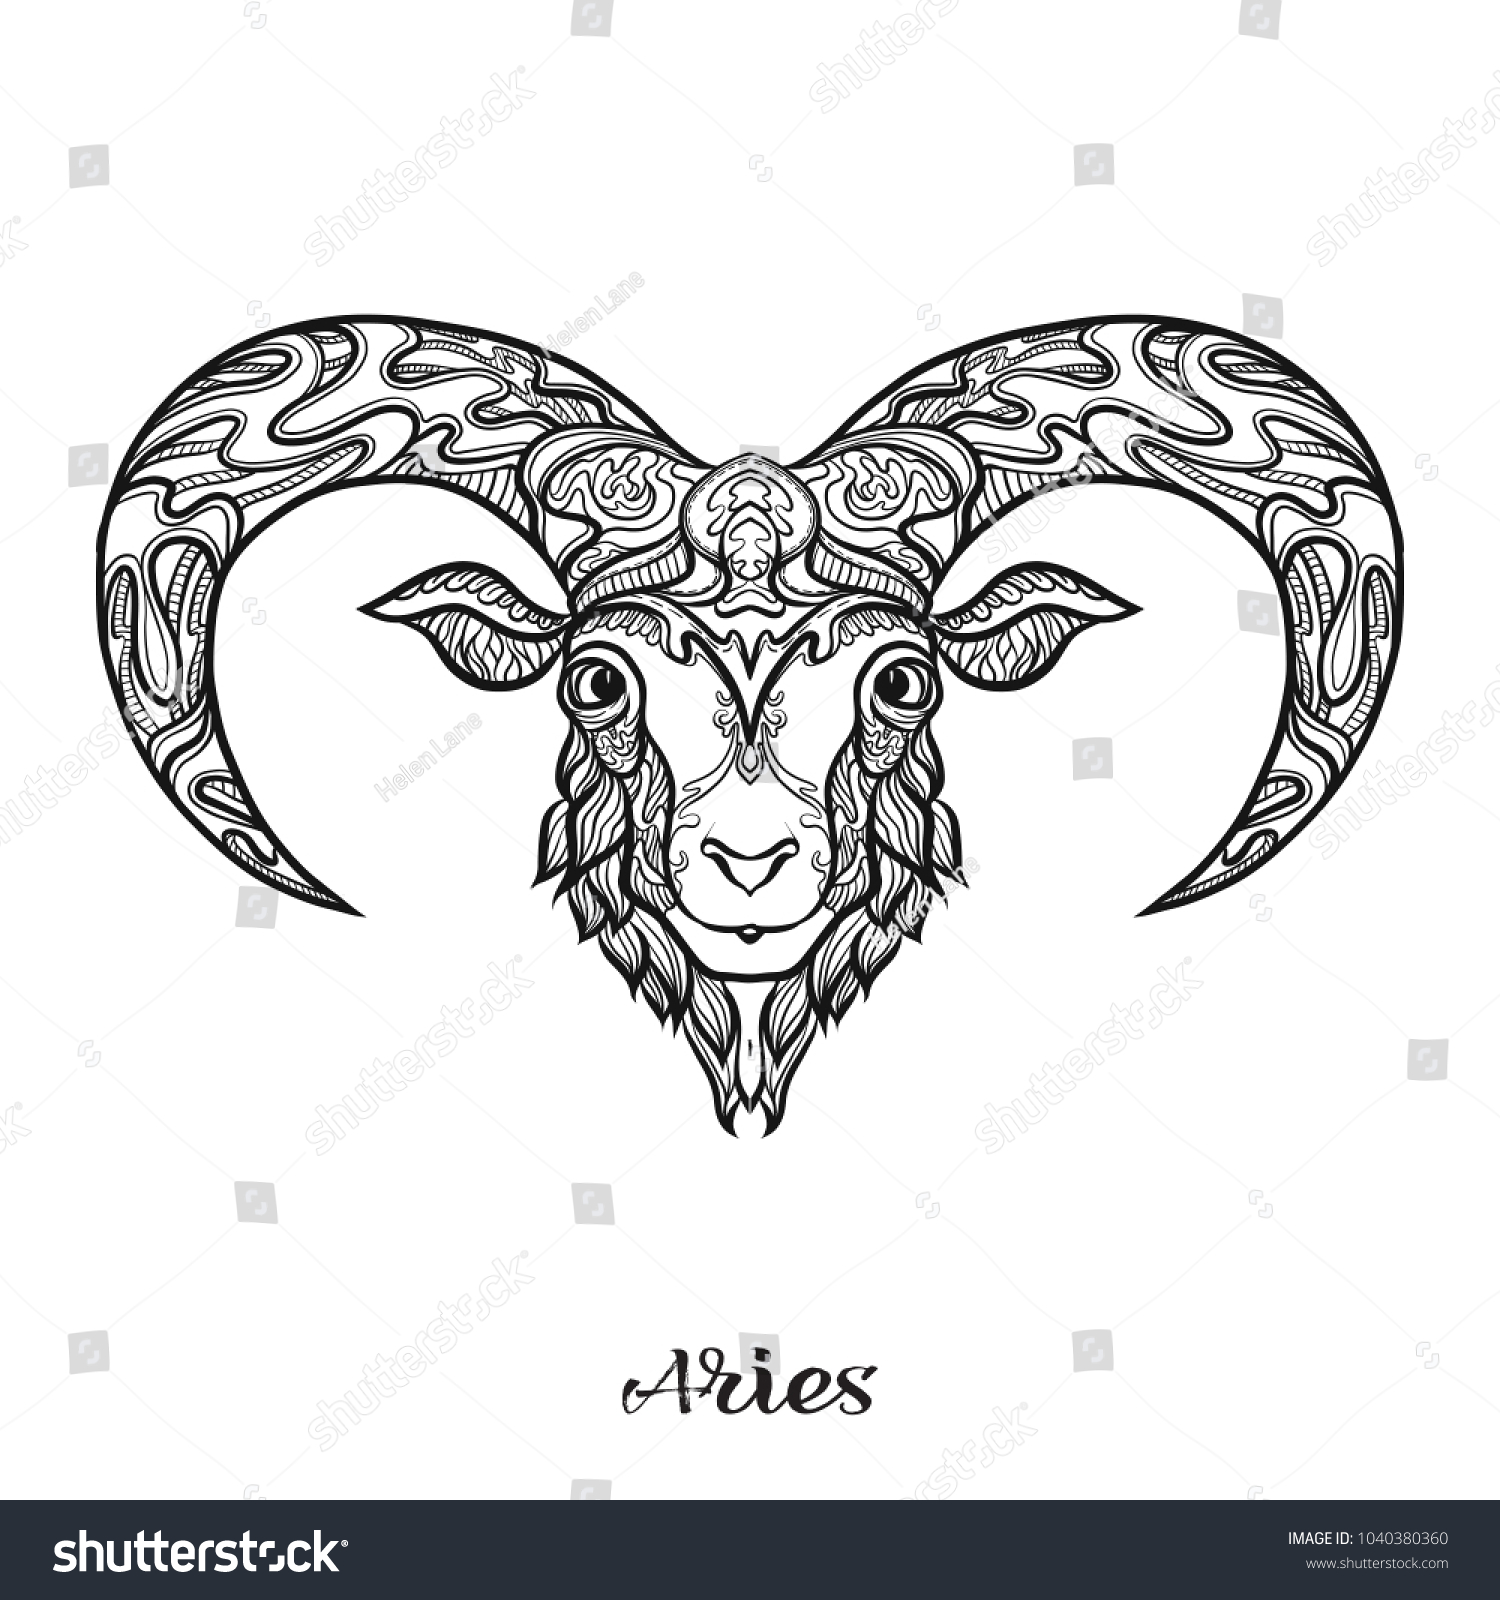 Aries Sheep Ram Zodiac Sign Astrological Stock Vector Royalty Free